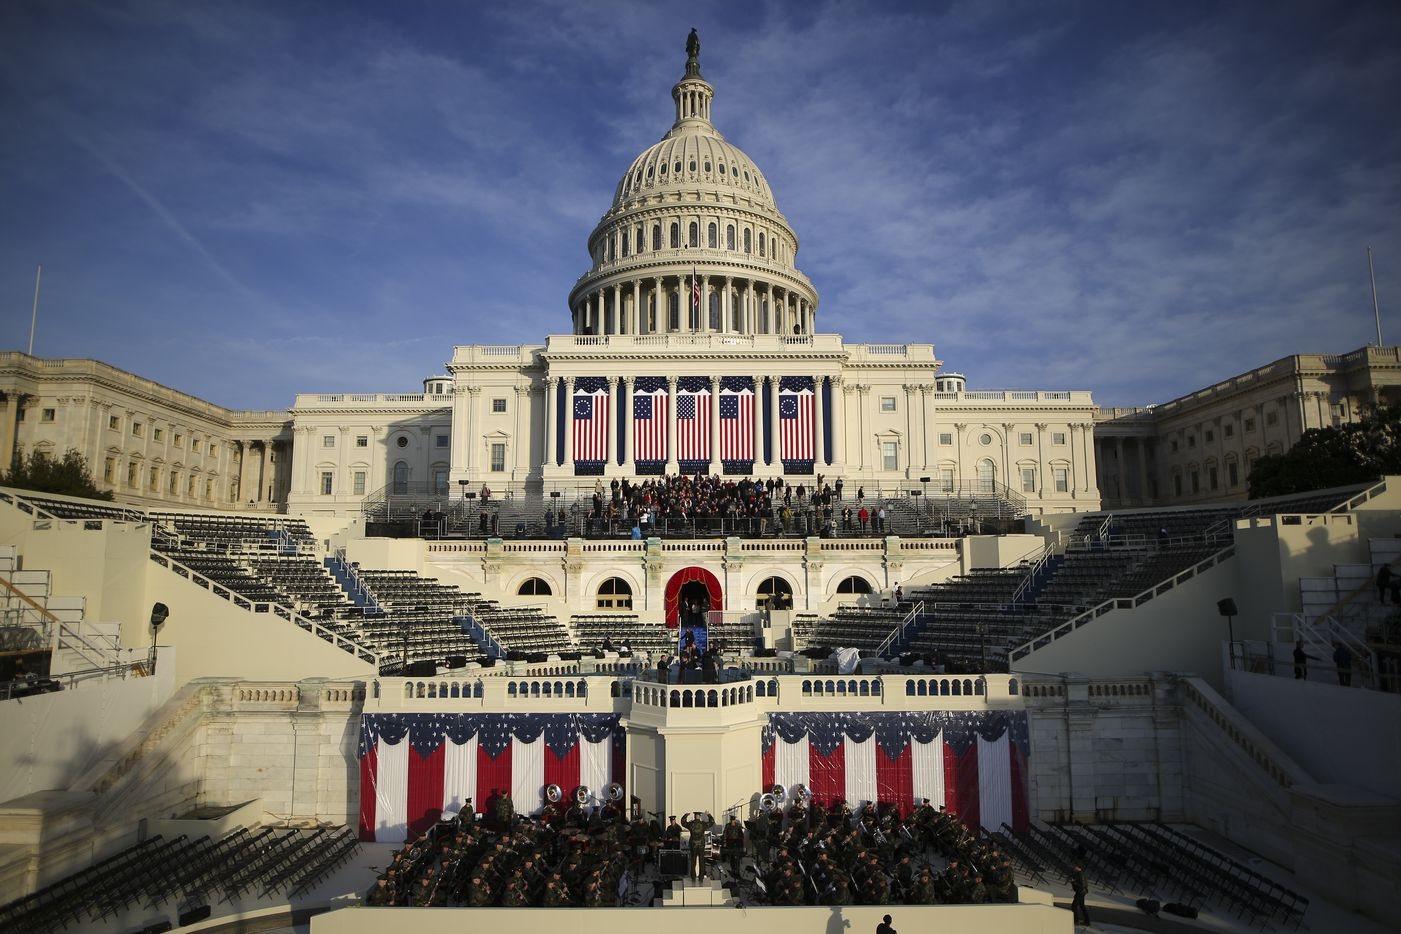 The Marine Corps Band rehearses in front of the U.S. Capitol on the day before Donald Trump's presidential inauguration, in Washington, Jan. 19, 2017.